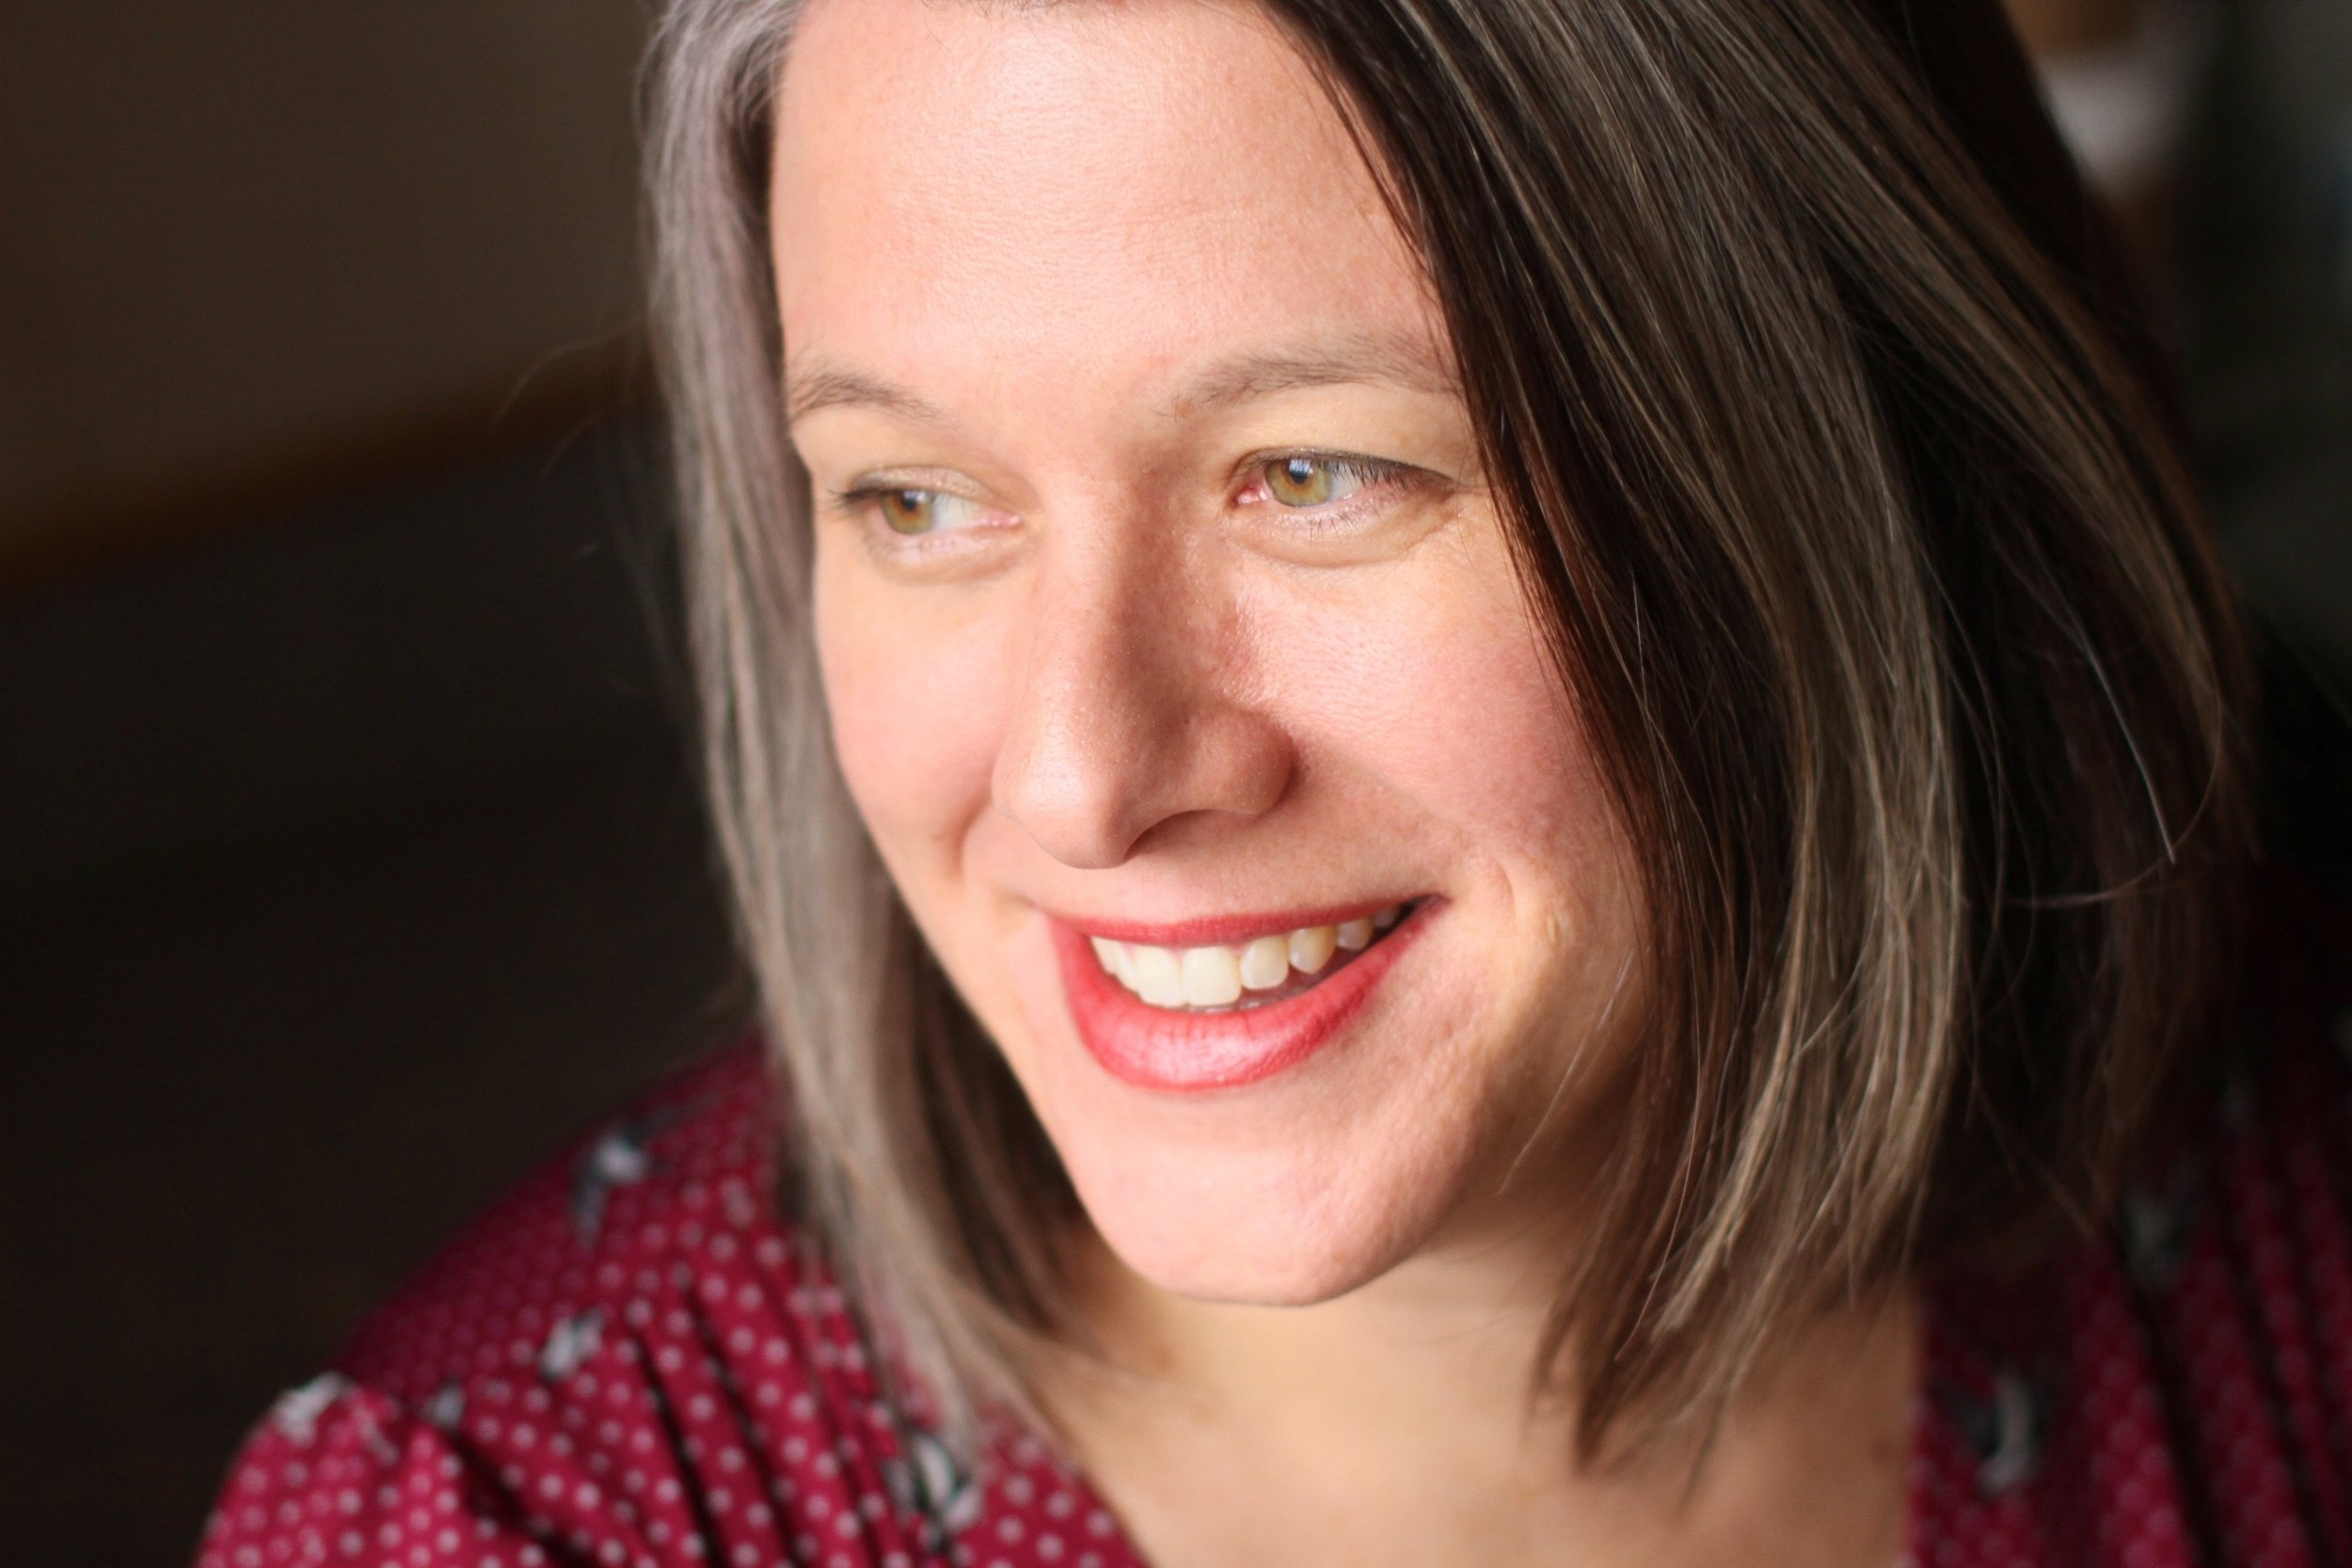 Official Author Photo of Laura Sims by EASEL